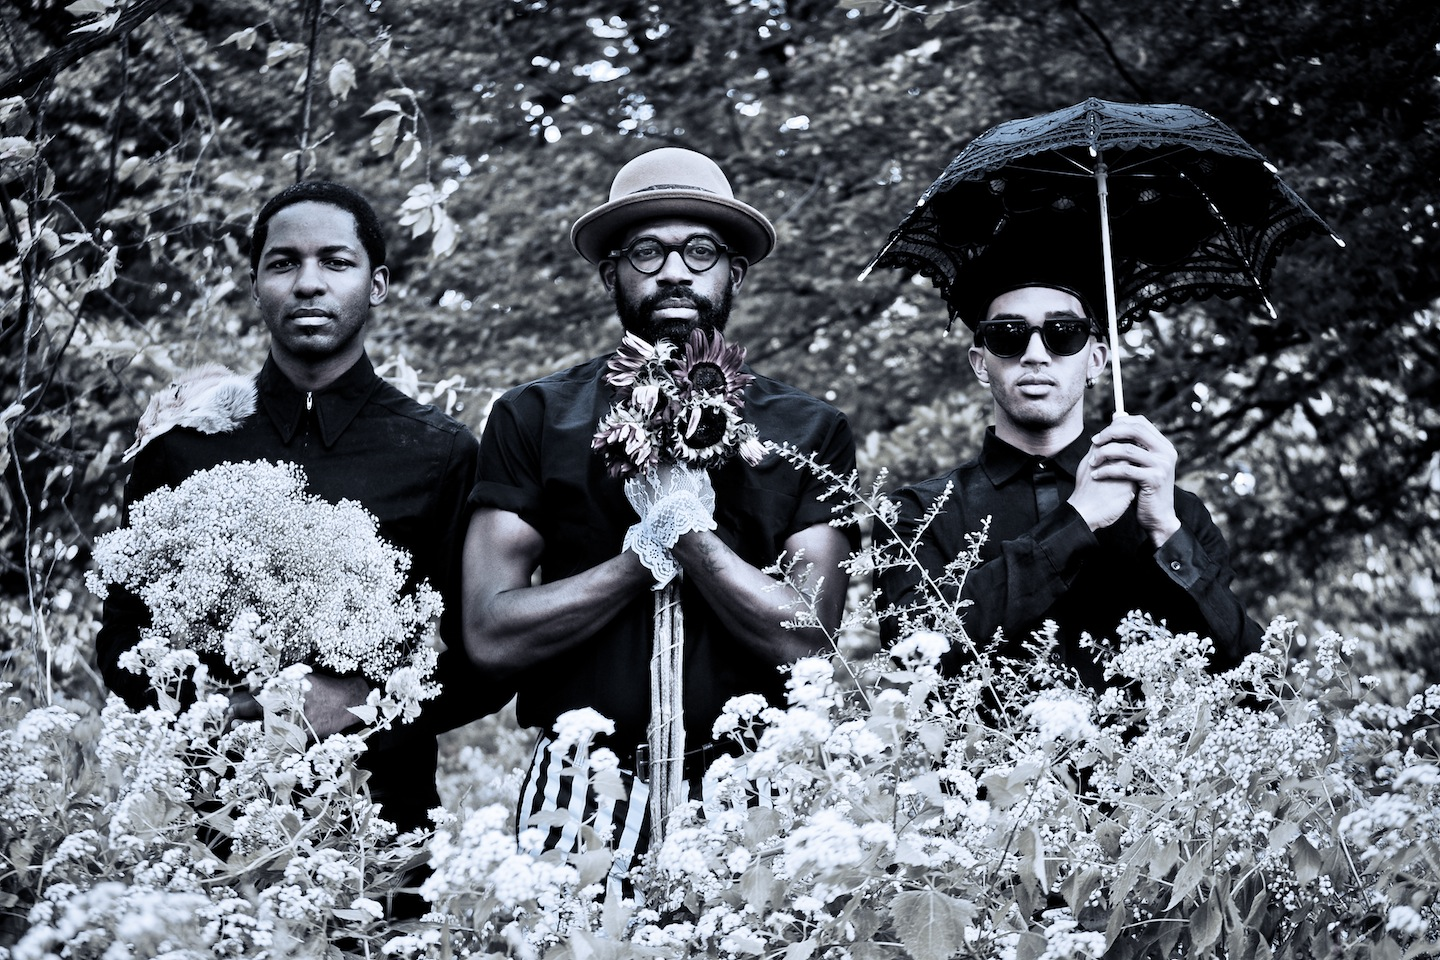 A black and white portrait of three black men standing side by side with gloved hands two are holding bouquets while one holds an umbrella.